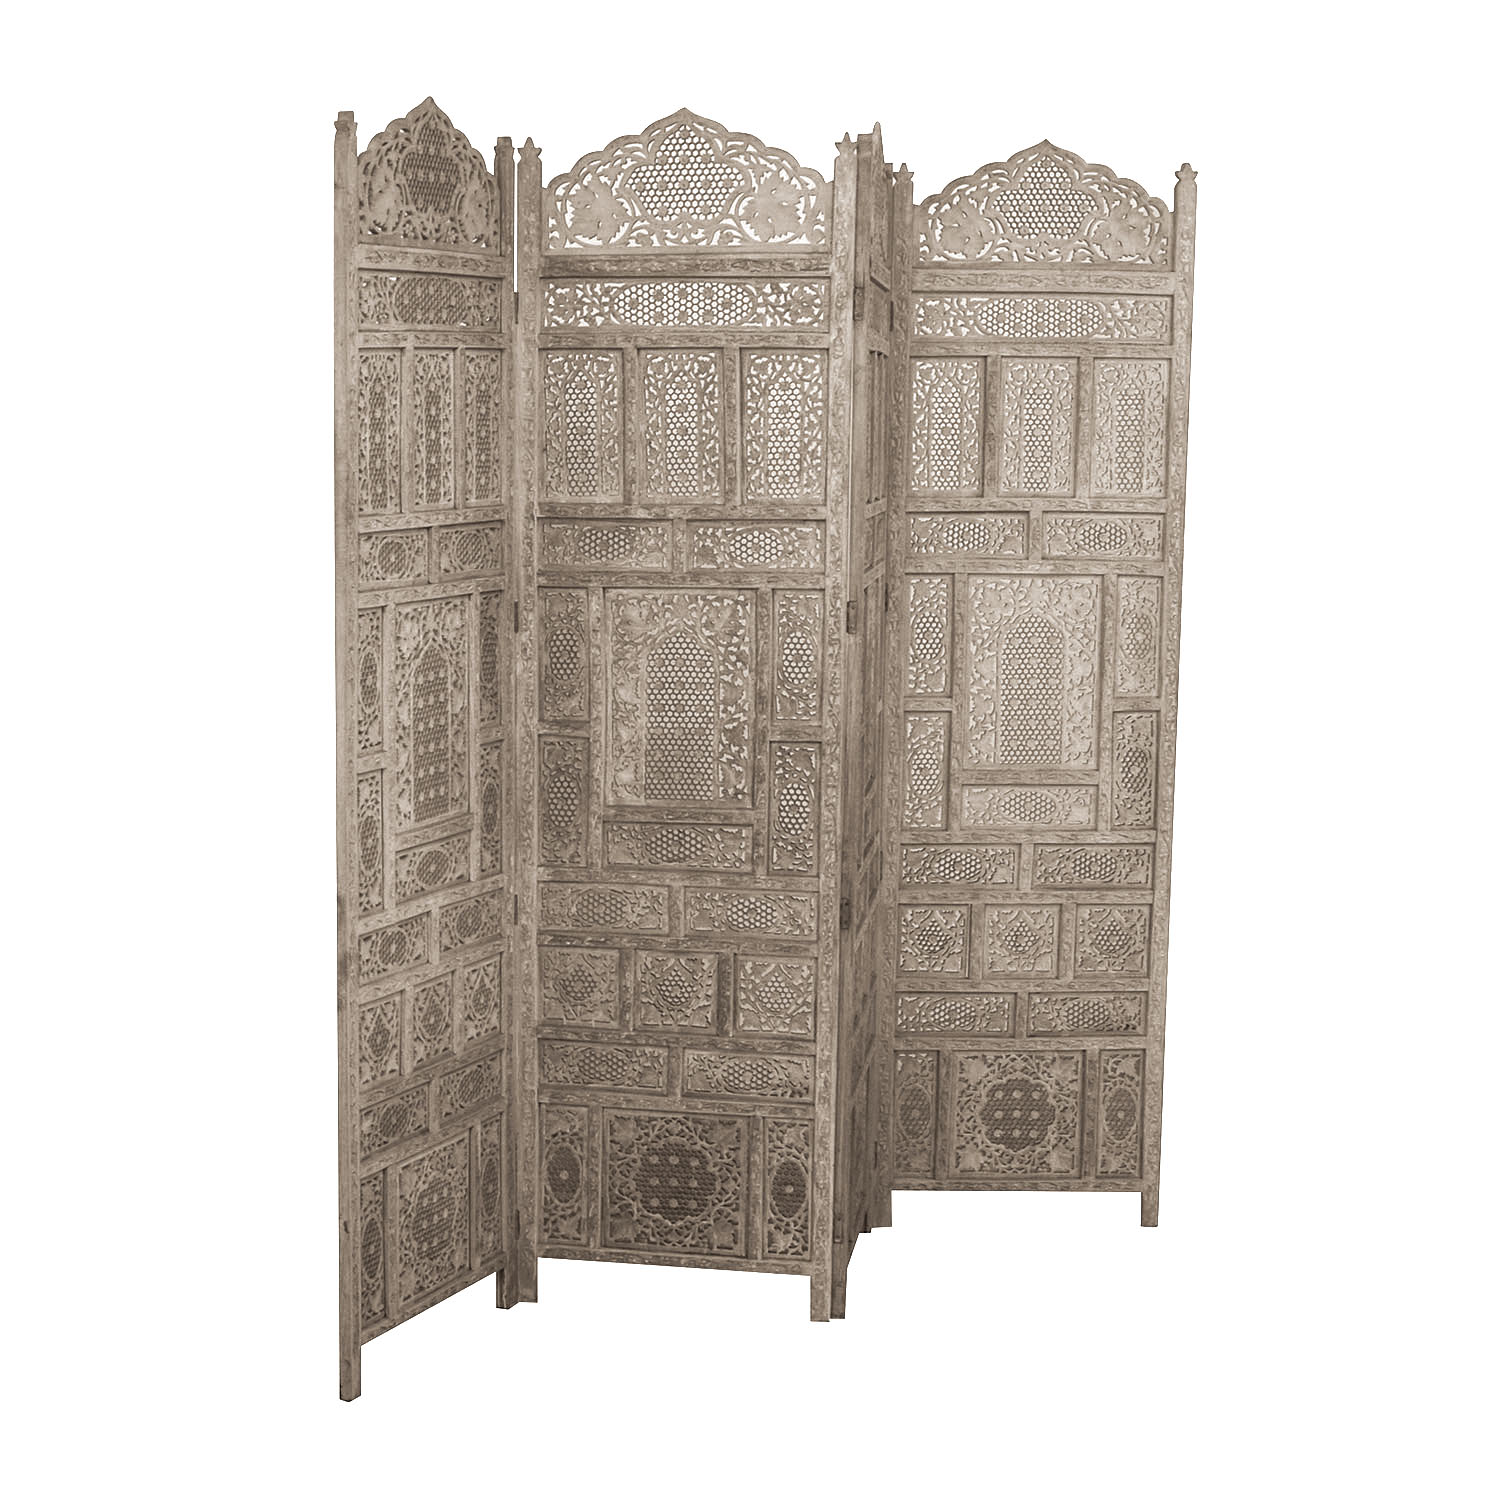 Distressed Light Grey Wood Room Divider second hand